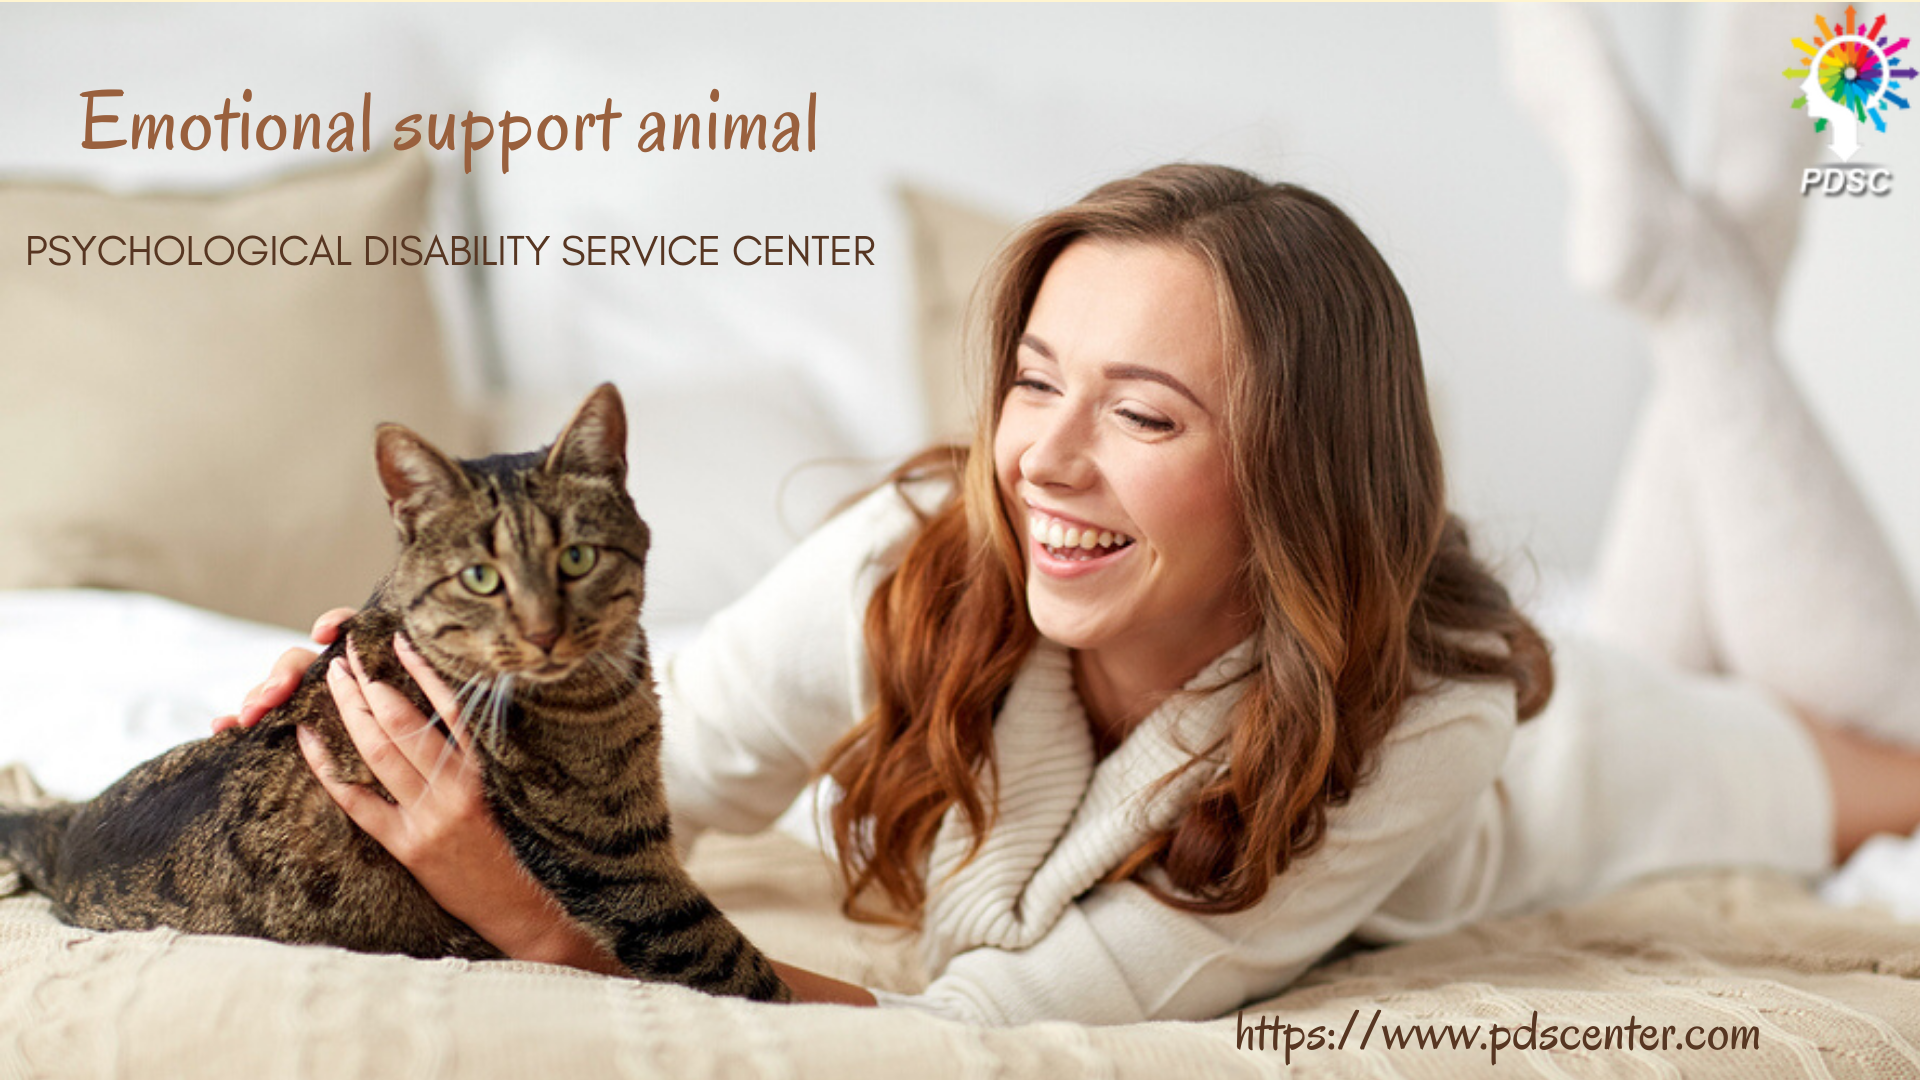 Why an emotional support animal is your best companion? - PDSC